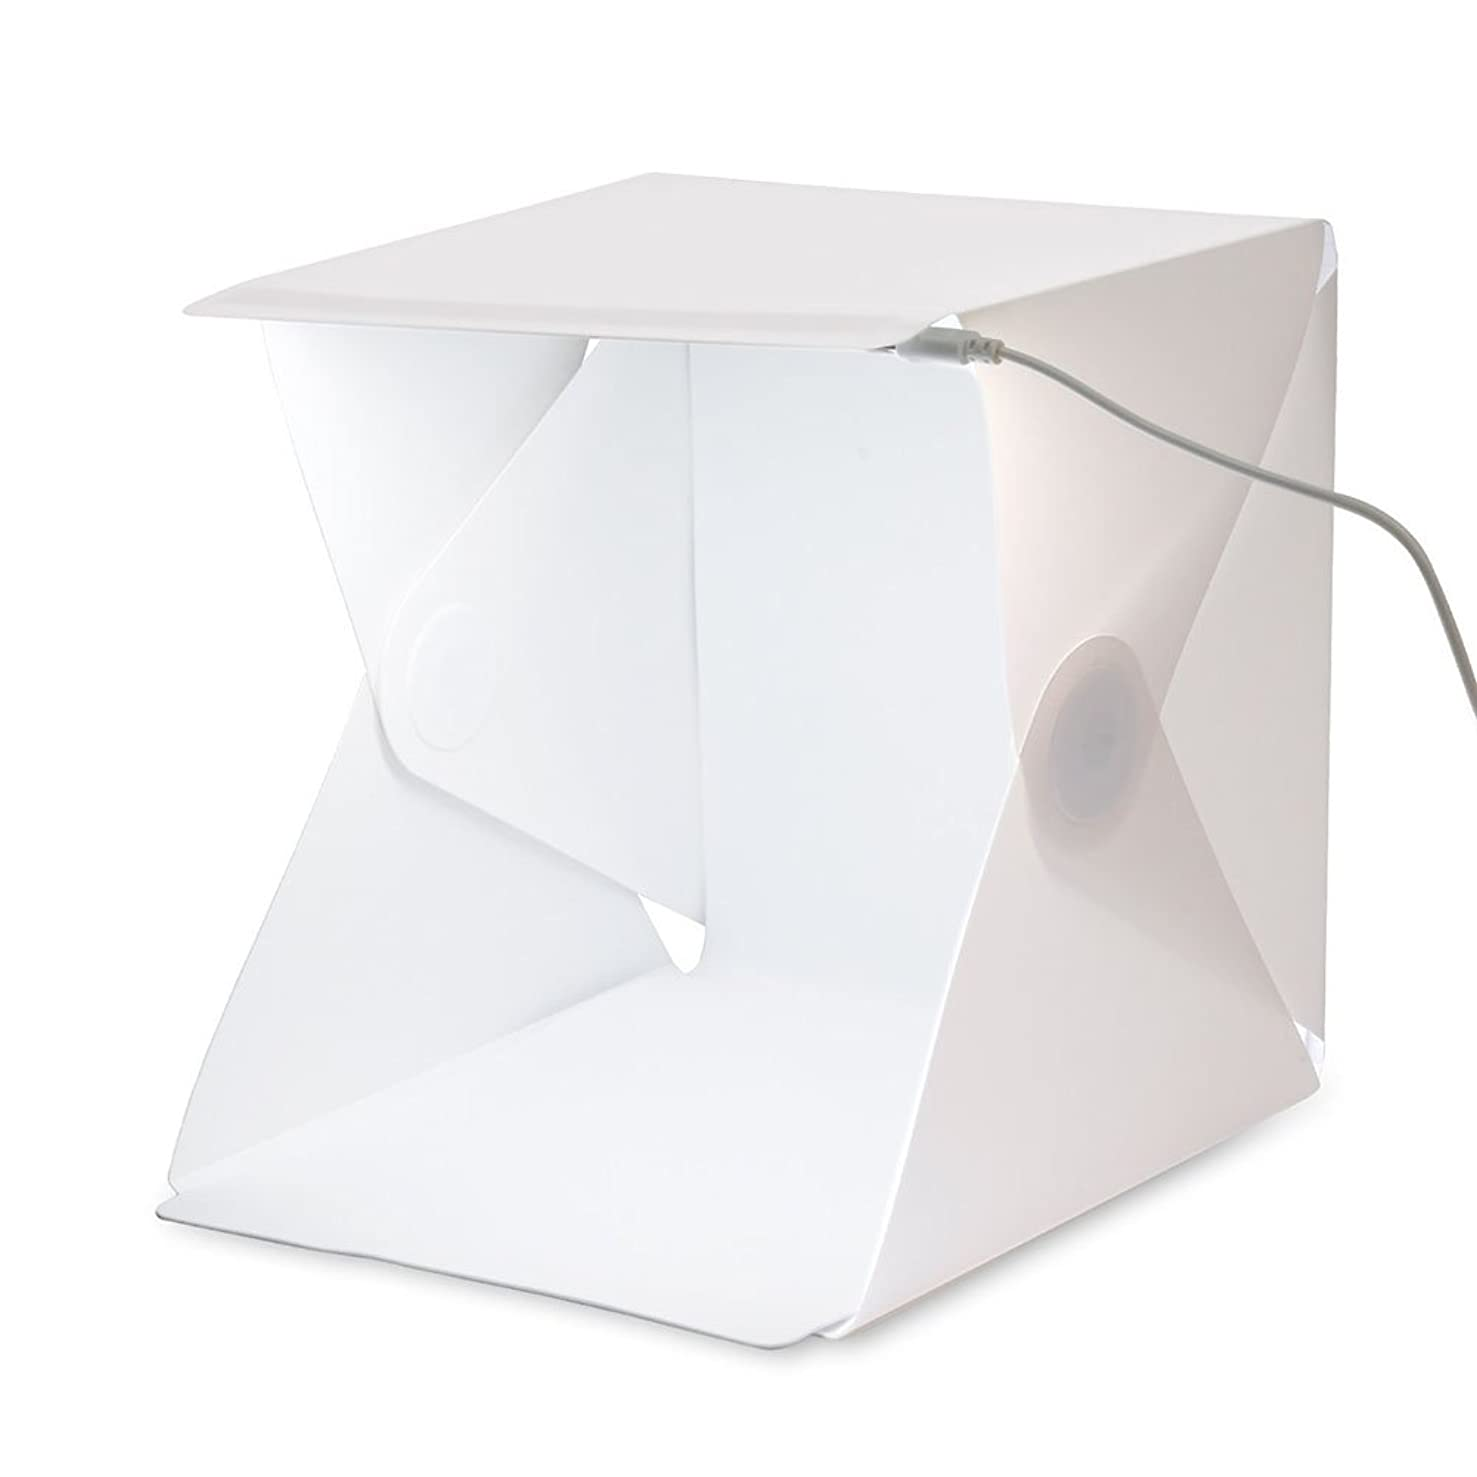 SLFC Folding Portable Lightbox Studio - Take Pictures Like a Pro on the Go with a Smartphone or DSLR Camera built-in Light Photo Box 22.6cm x 23cm x 24cm